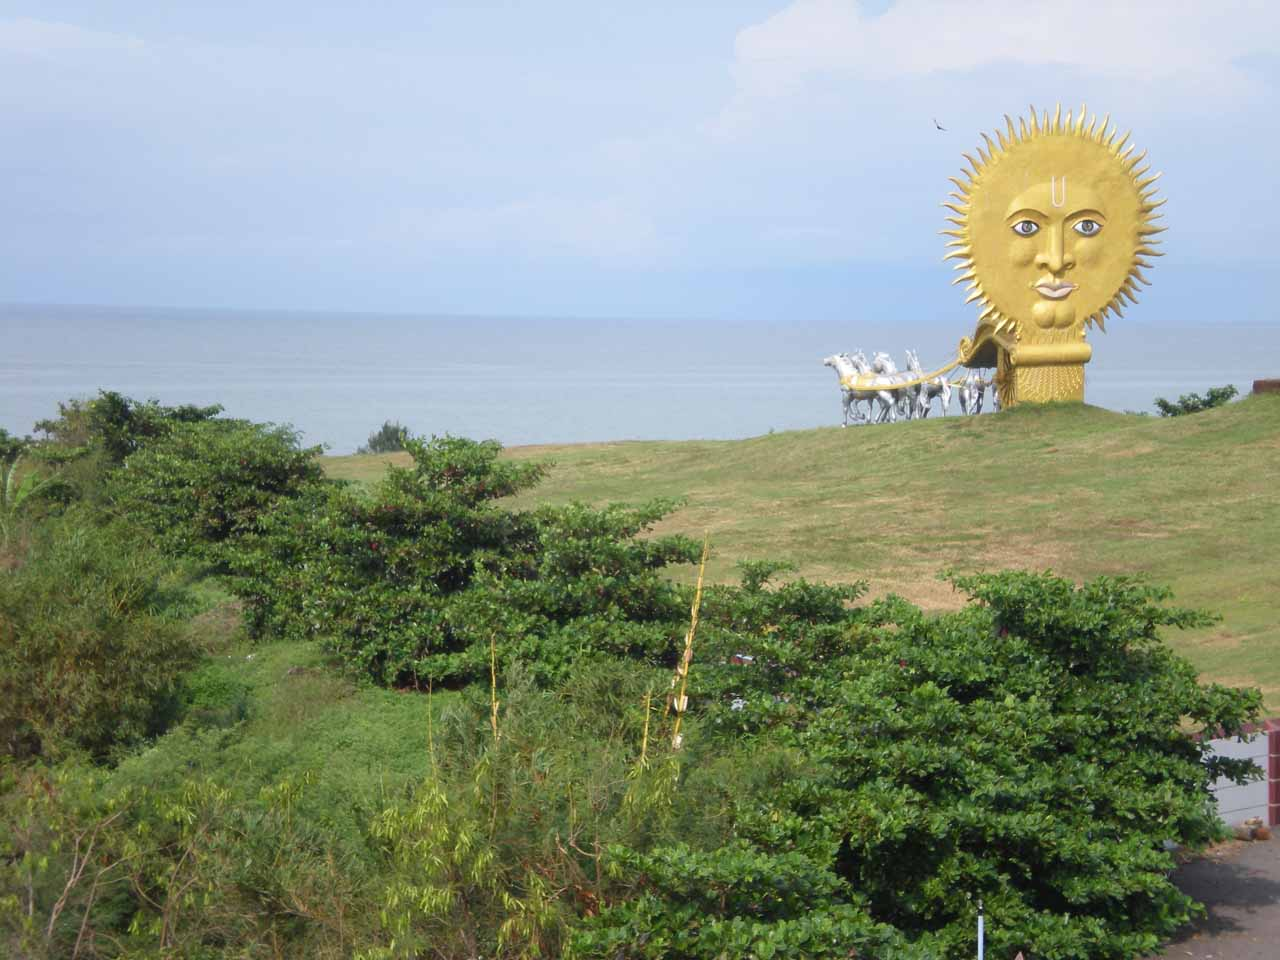 An interesting sunshine statue at Murudeshwar